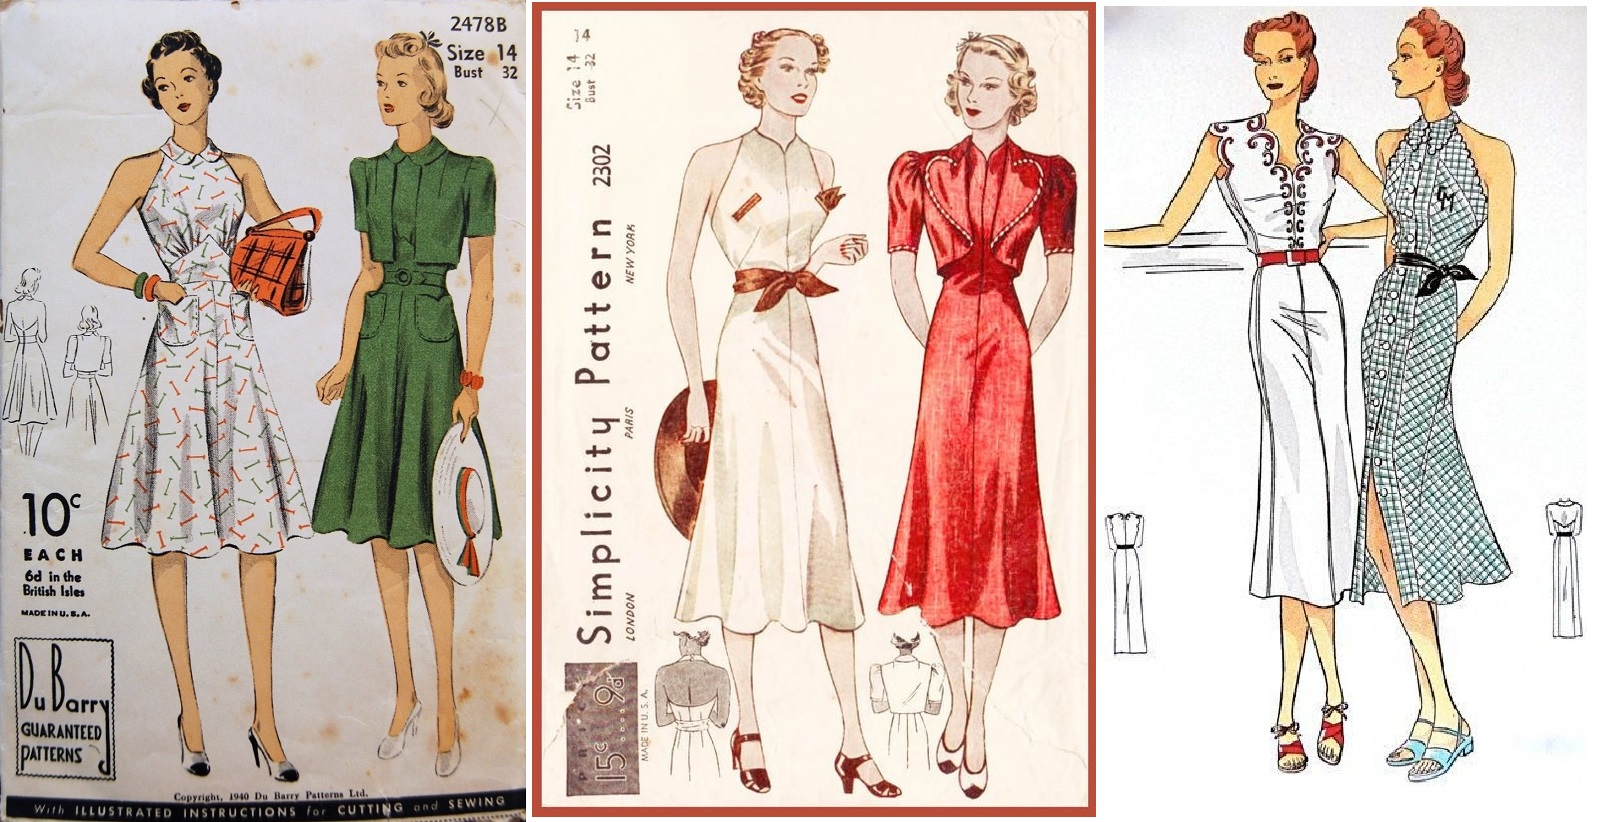 ea9df6ea2c From seeing full-skirted, halter-style garments paired with a separate  cover-up pop up again and again in between 1936 and 1940 respectively, this  is seems ...